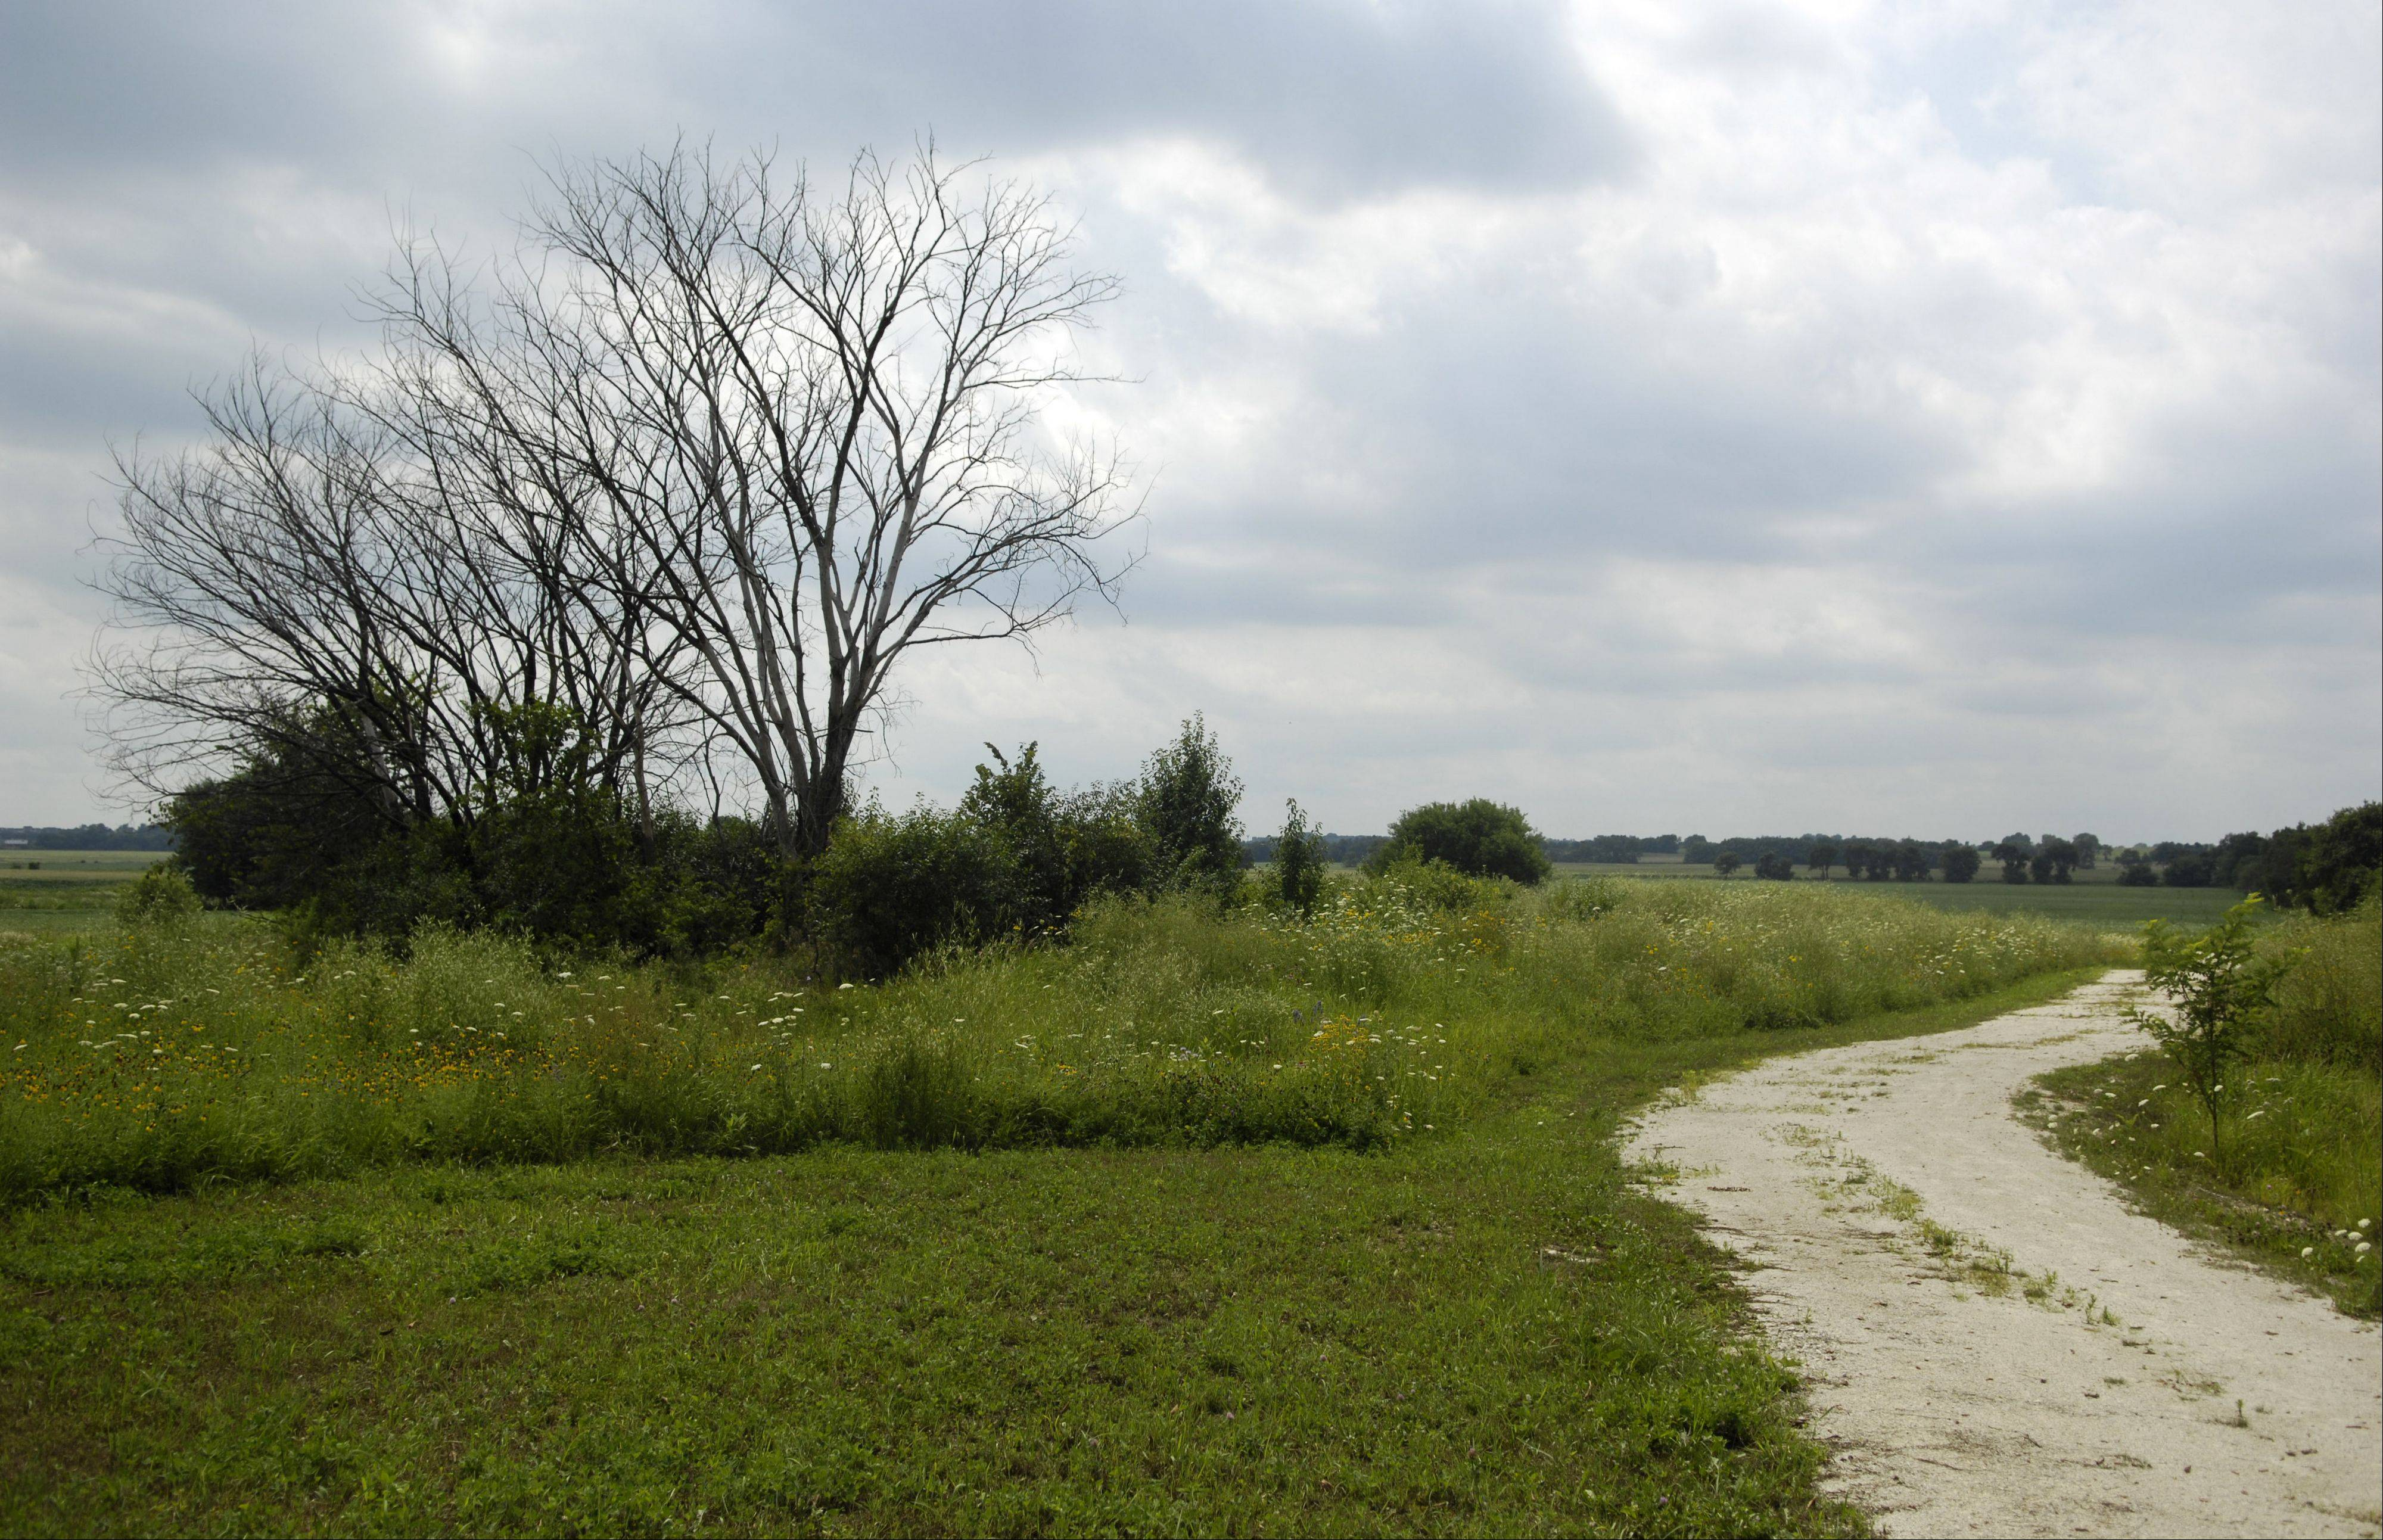 Geneva is likely to approve an intergovernmental pact that means it can finally have community garden plots next year at Prairie Green Preserve. The deal between the city, Geneva Park District and Kane County Forest Preserve would create 140 plots on the site.